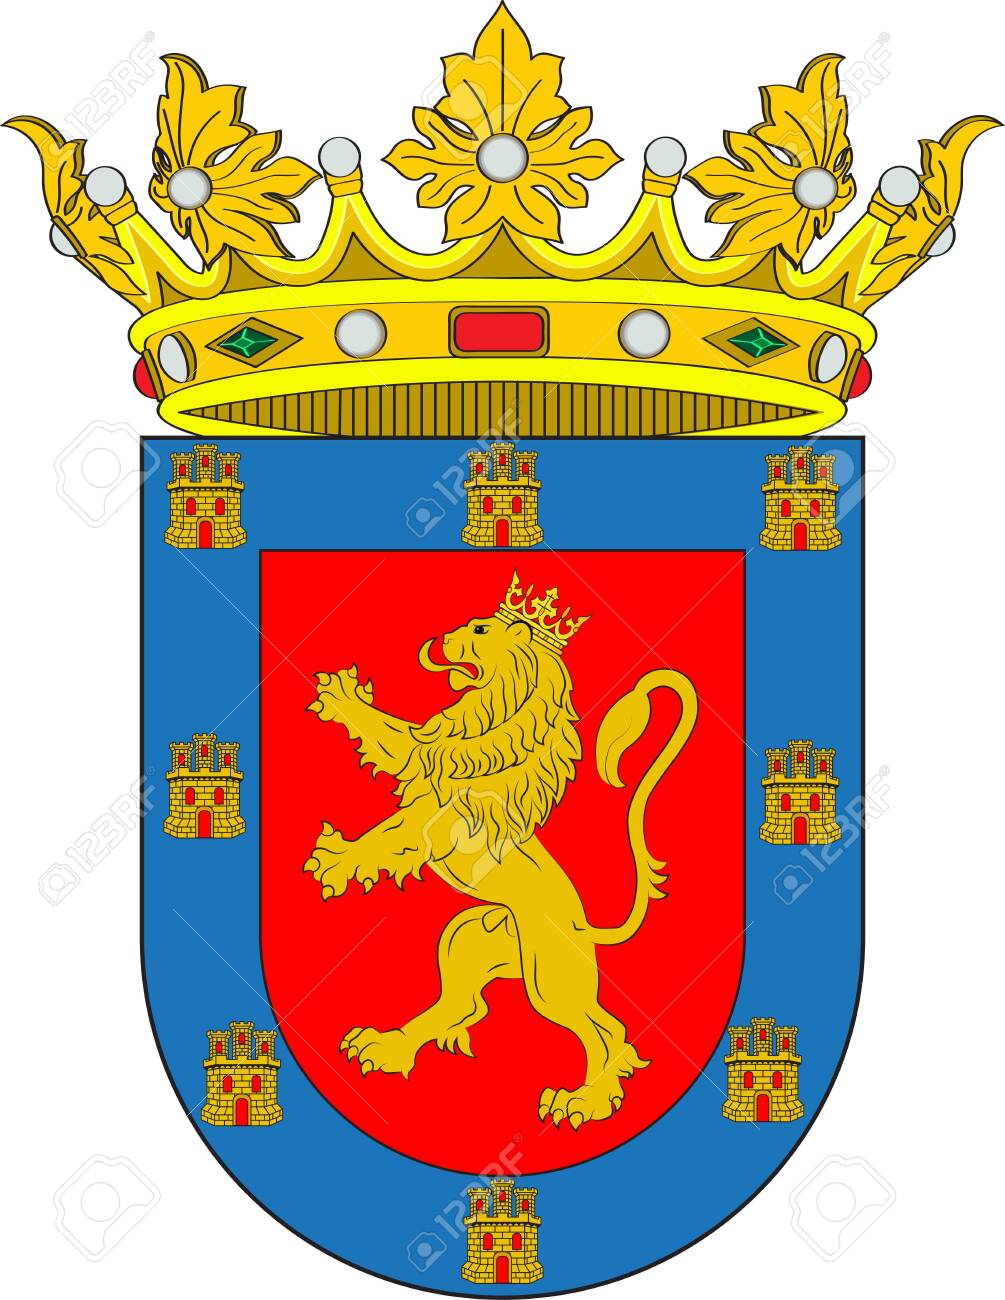 Coat of arms of Coria is a Spanish municipality in the province of Caceres, Extremadura, Spain. Vector illustration - 127600238